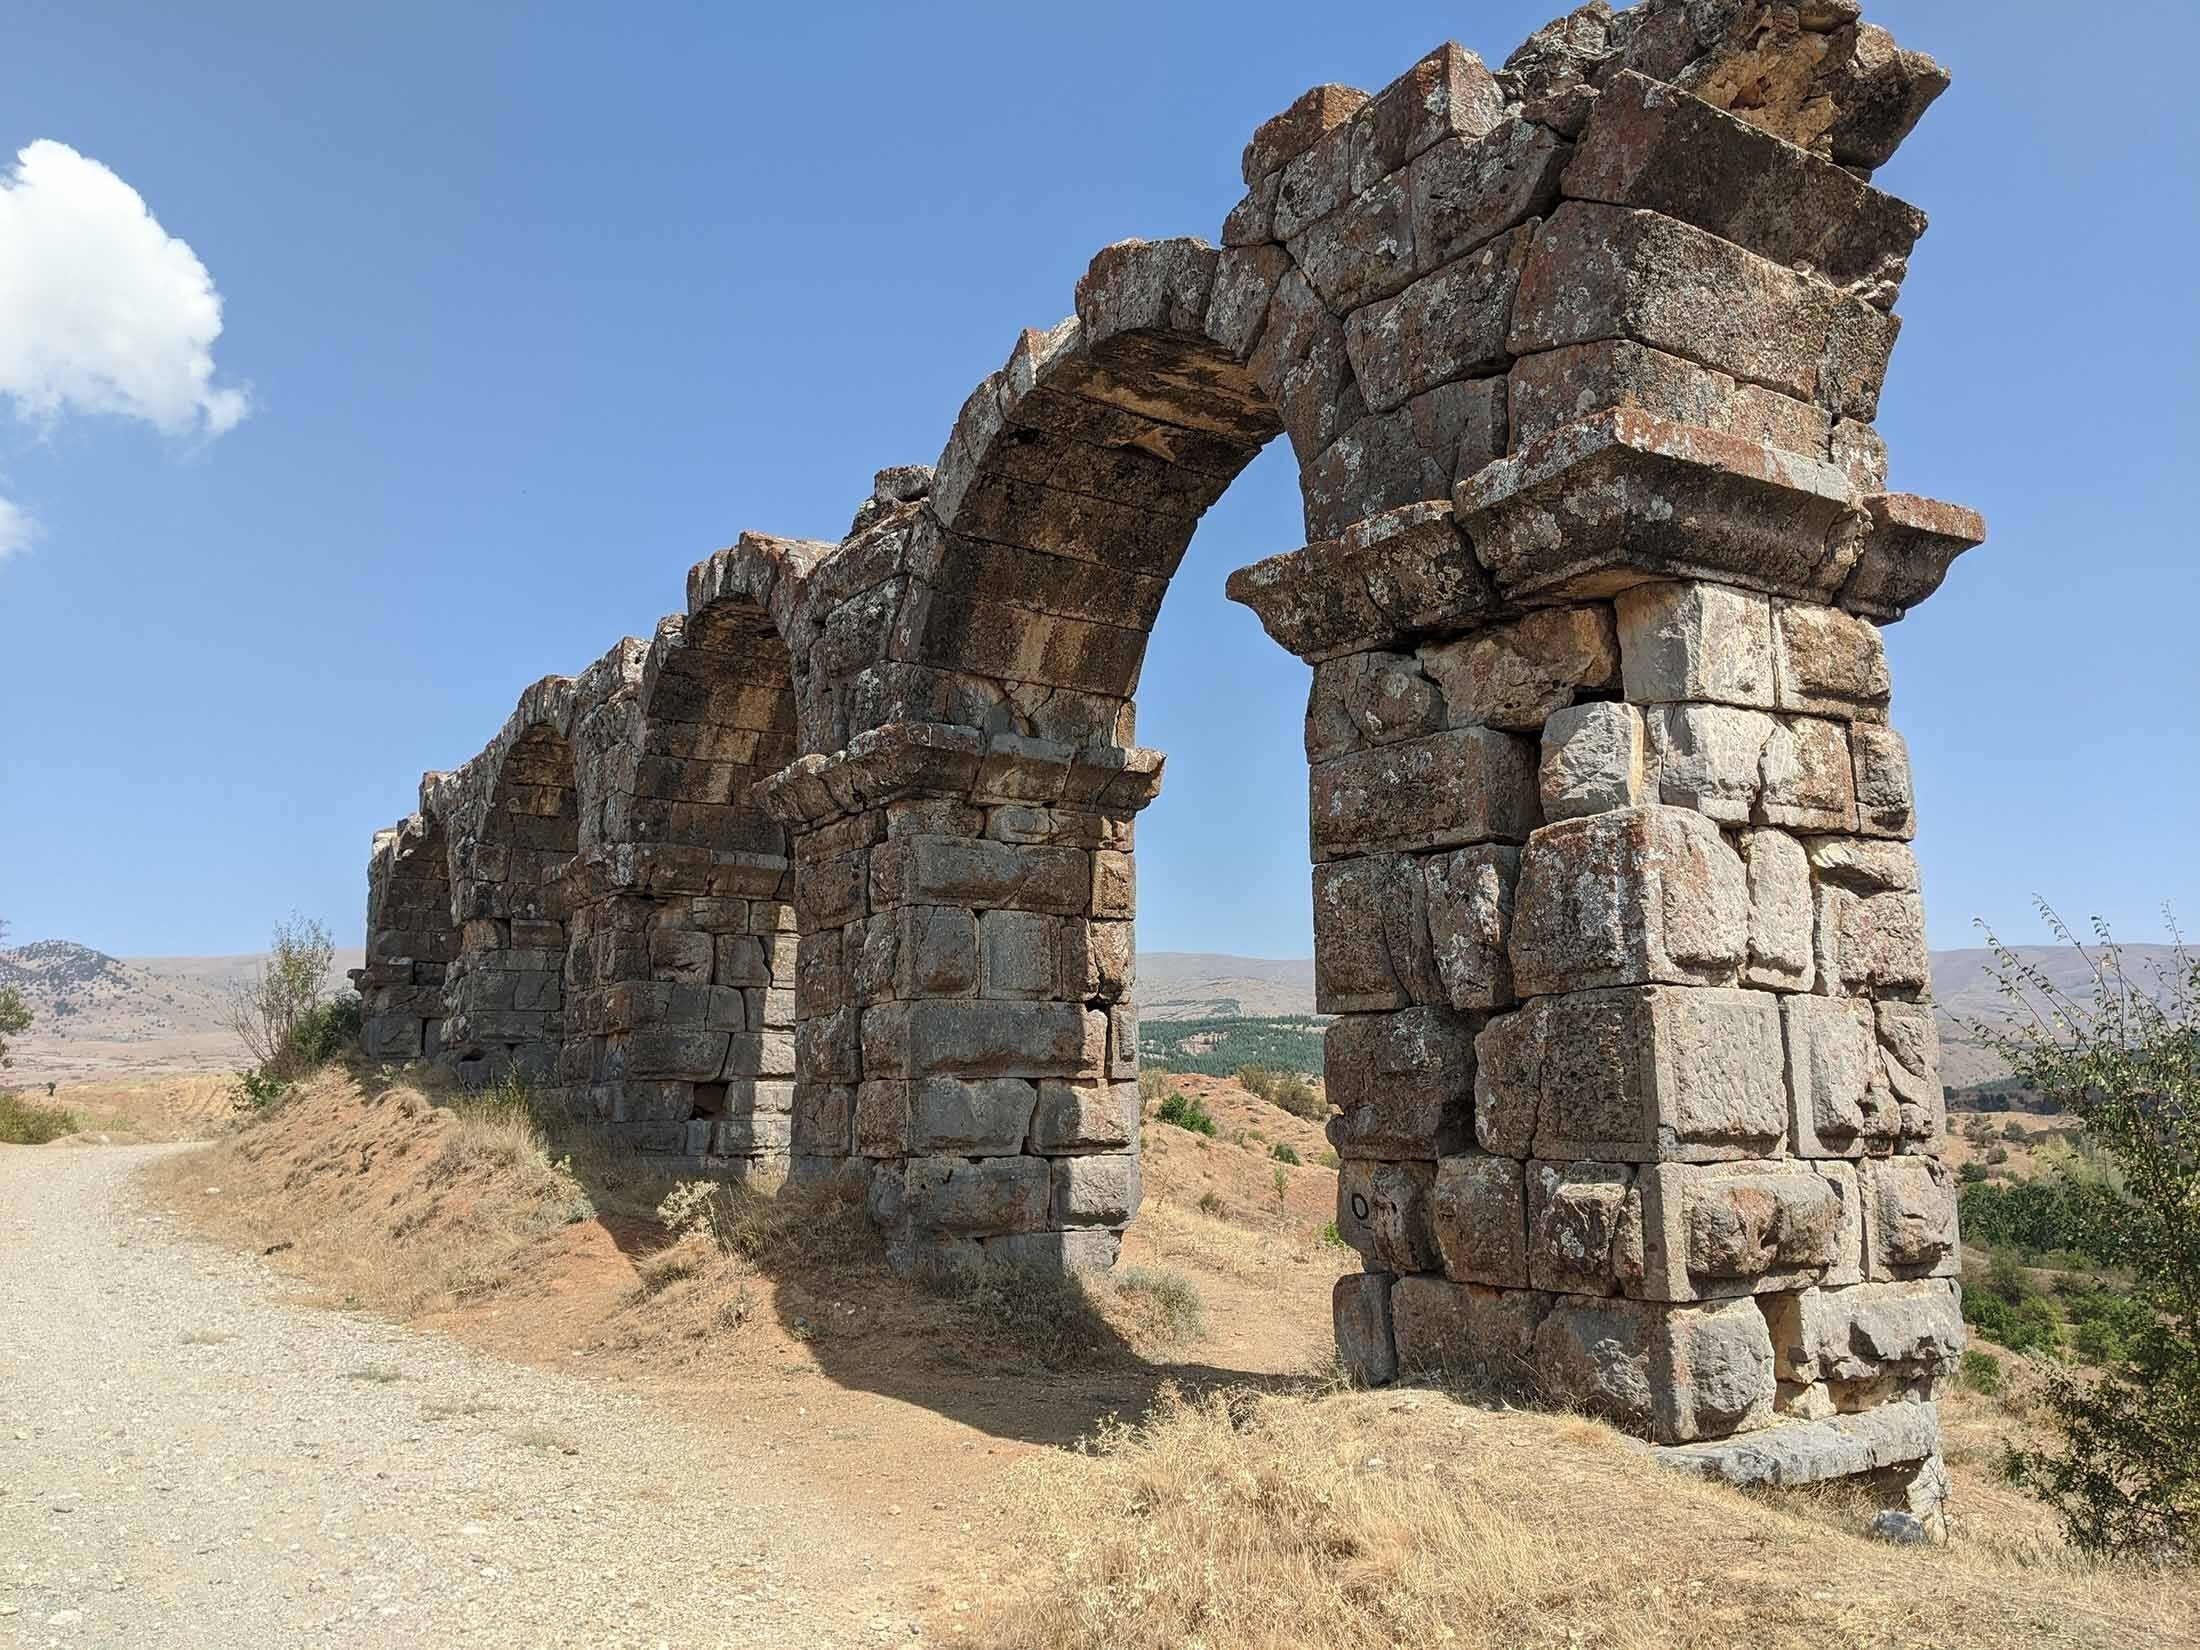 An ancient Roman aqueduct leading to the city of Antioch built by Emperor Trajan in the 2nd century A.D., stands outside modern-day Hatay, Turkey. (Shutterstock Photo)